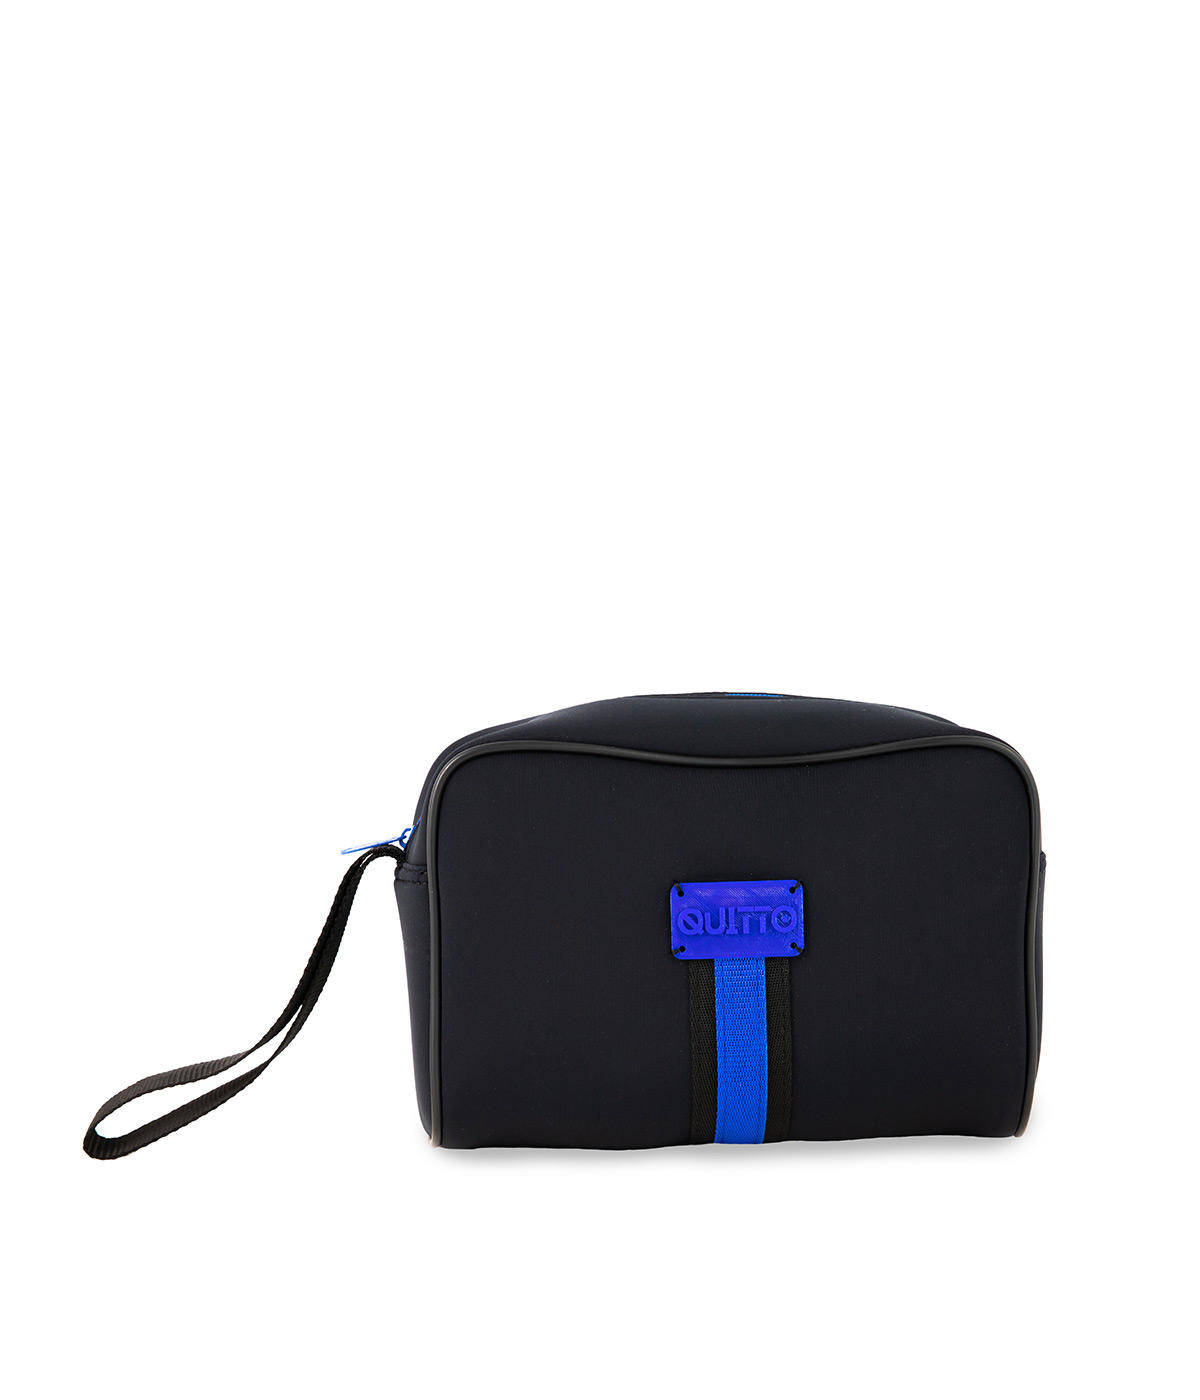 bBeauty Case Neoprene Impemeabile Quitto Bags